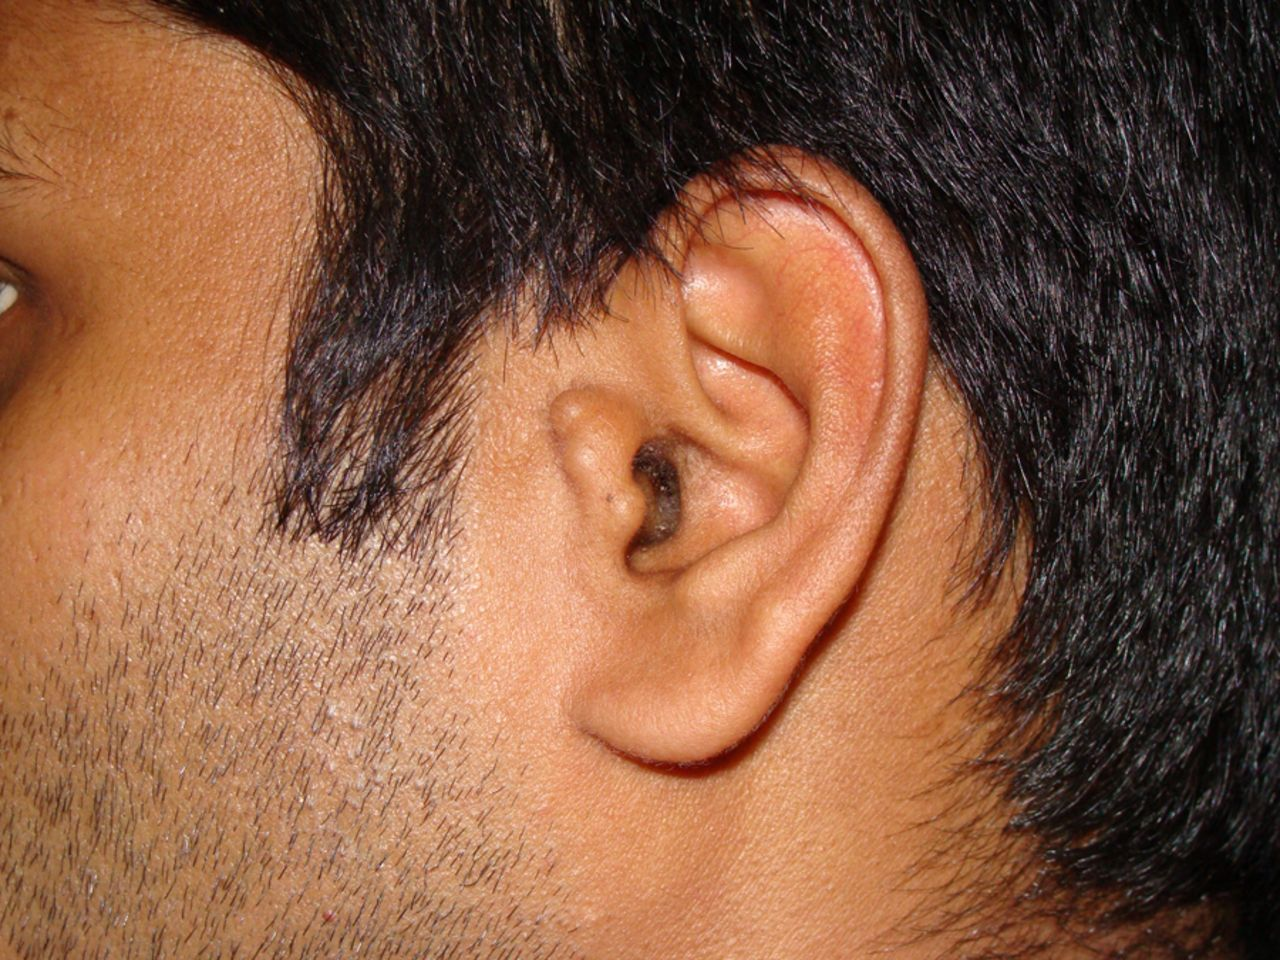 Accessory tragus: a dentist's perspective | BMJ Case Reports